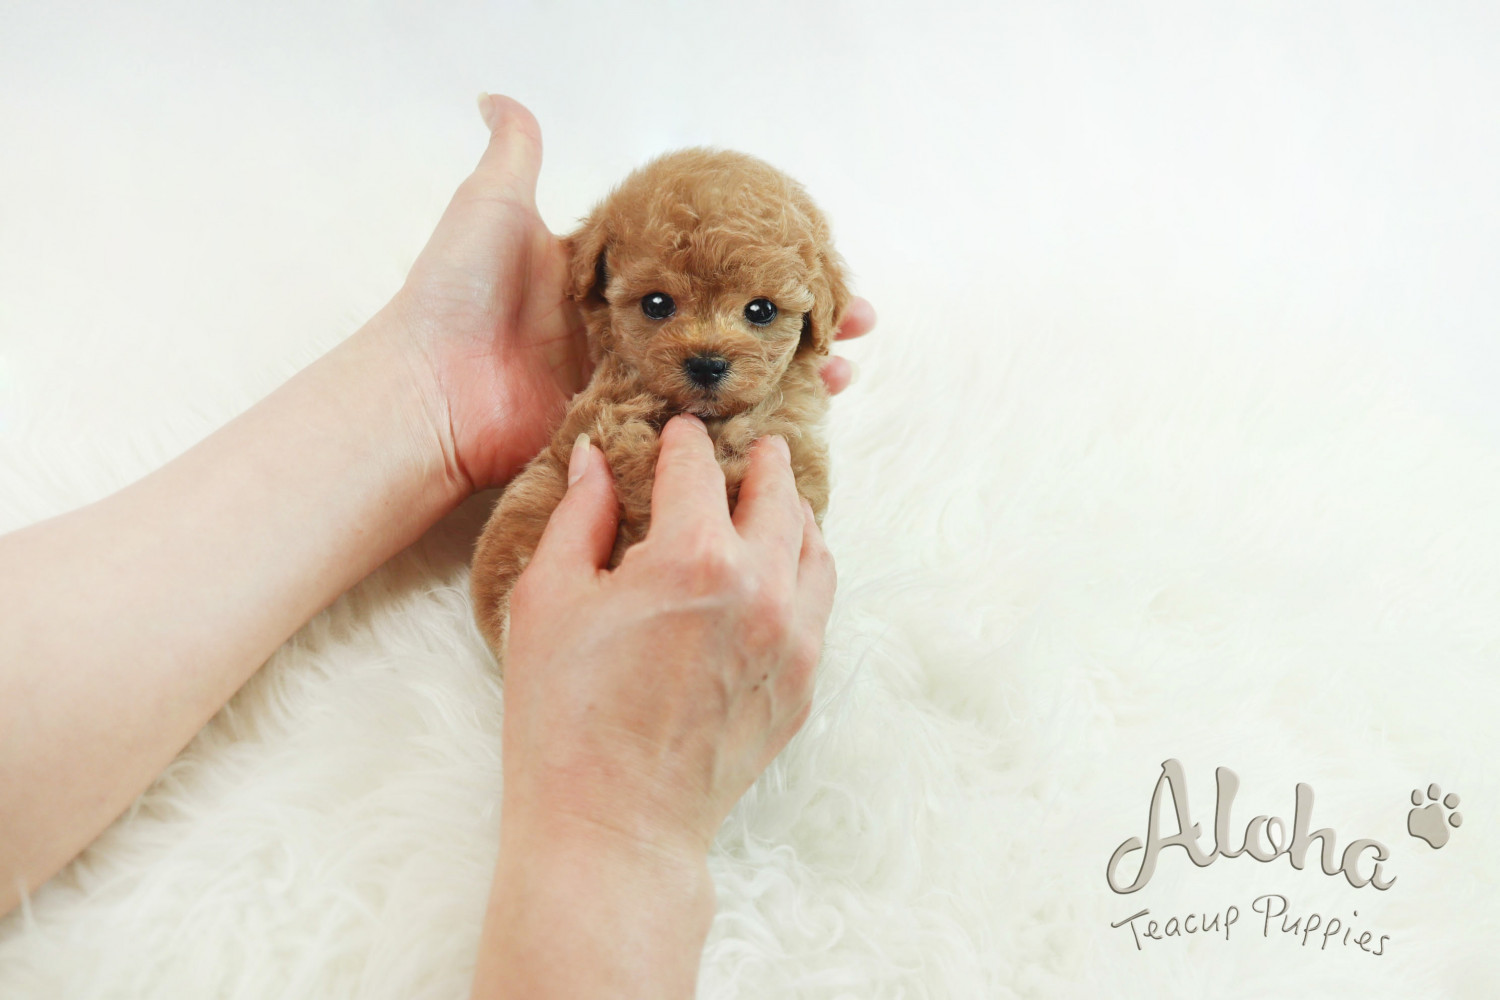 Poodle Puppies For Sale | New York, NY #296263 | Petzlover